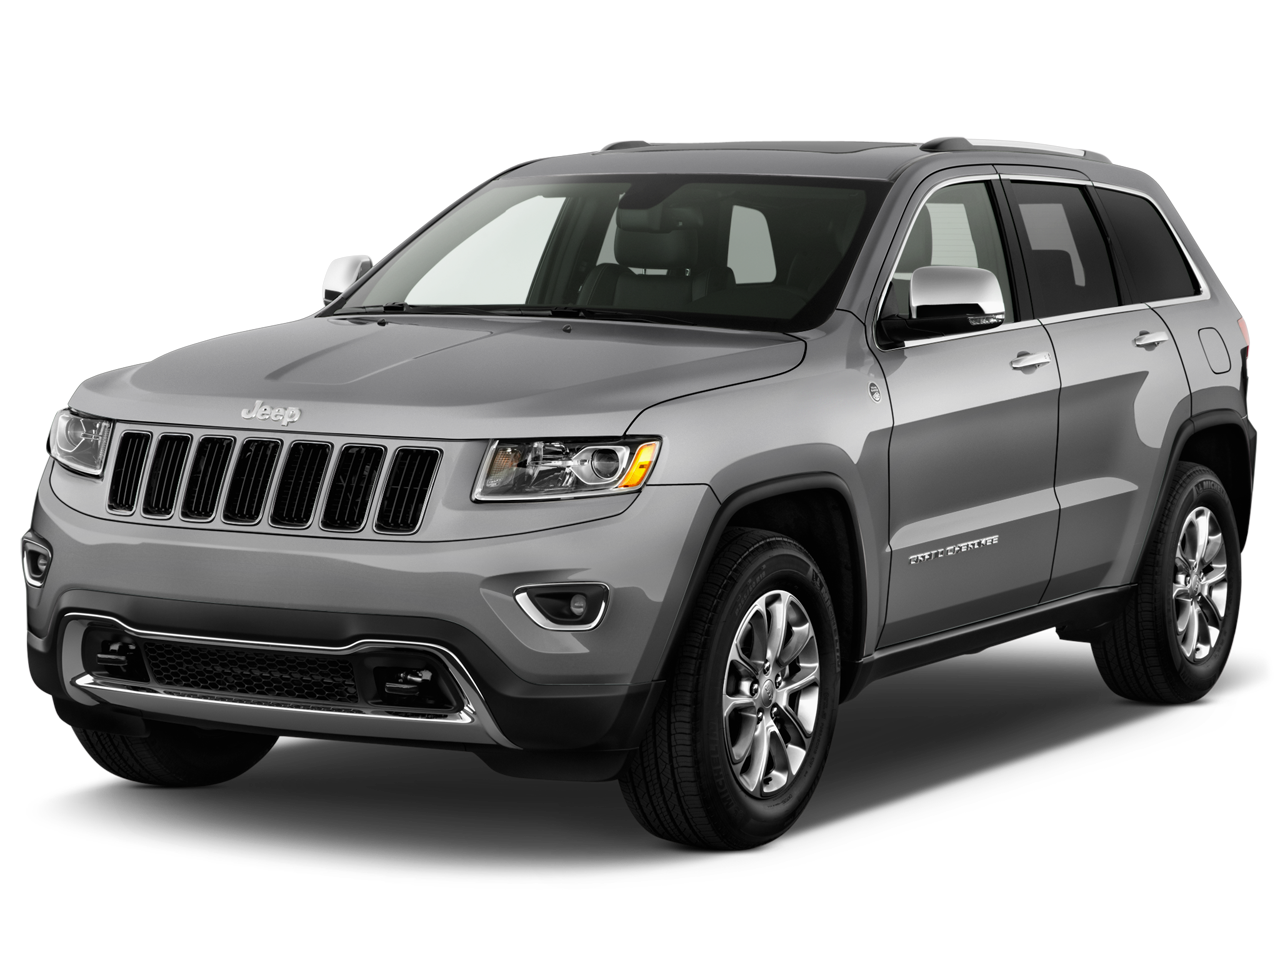 chrysler dodge jeep ram dealer incentives south chicago dodge chrysler jeep. Black Bedroom Furniture Sets. Home Design Ideas